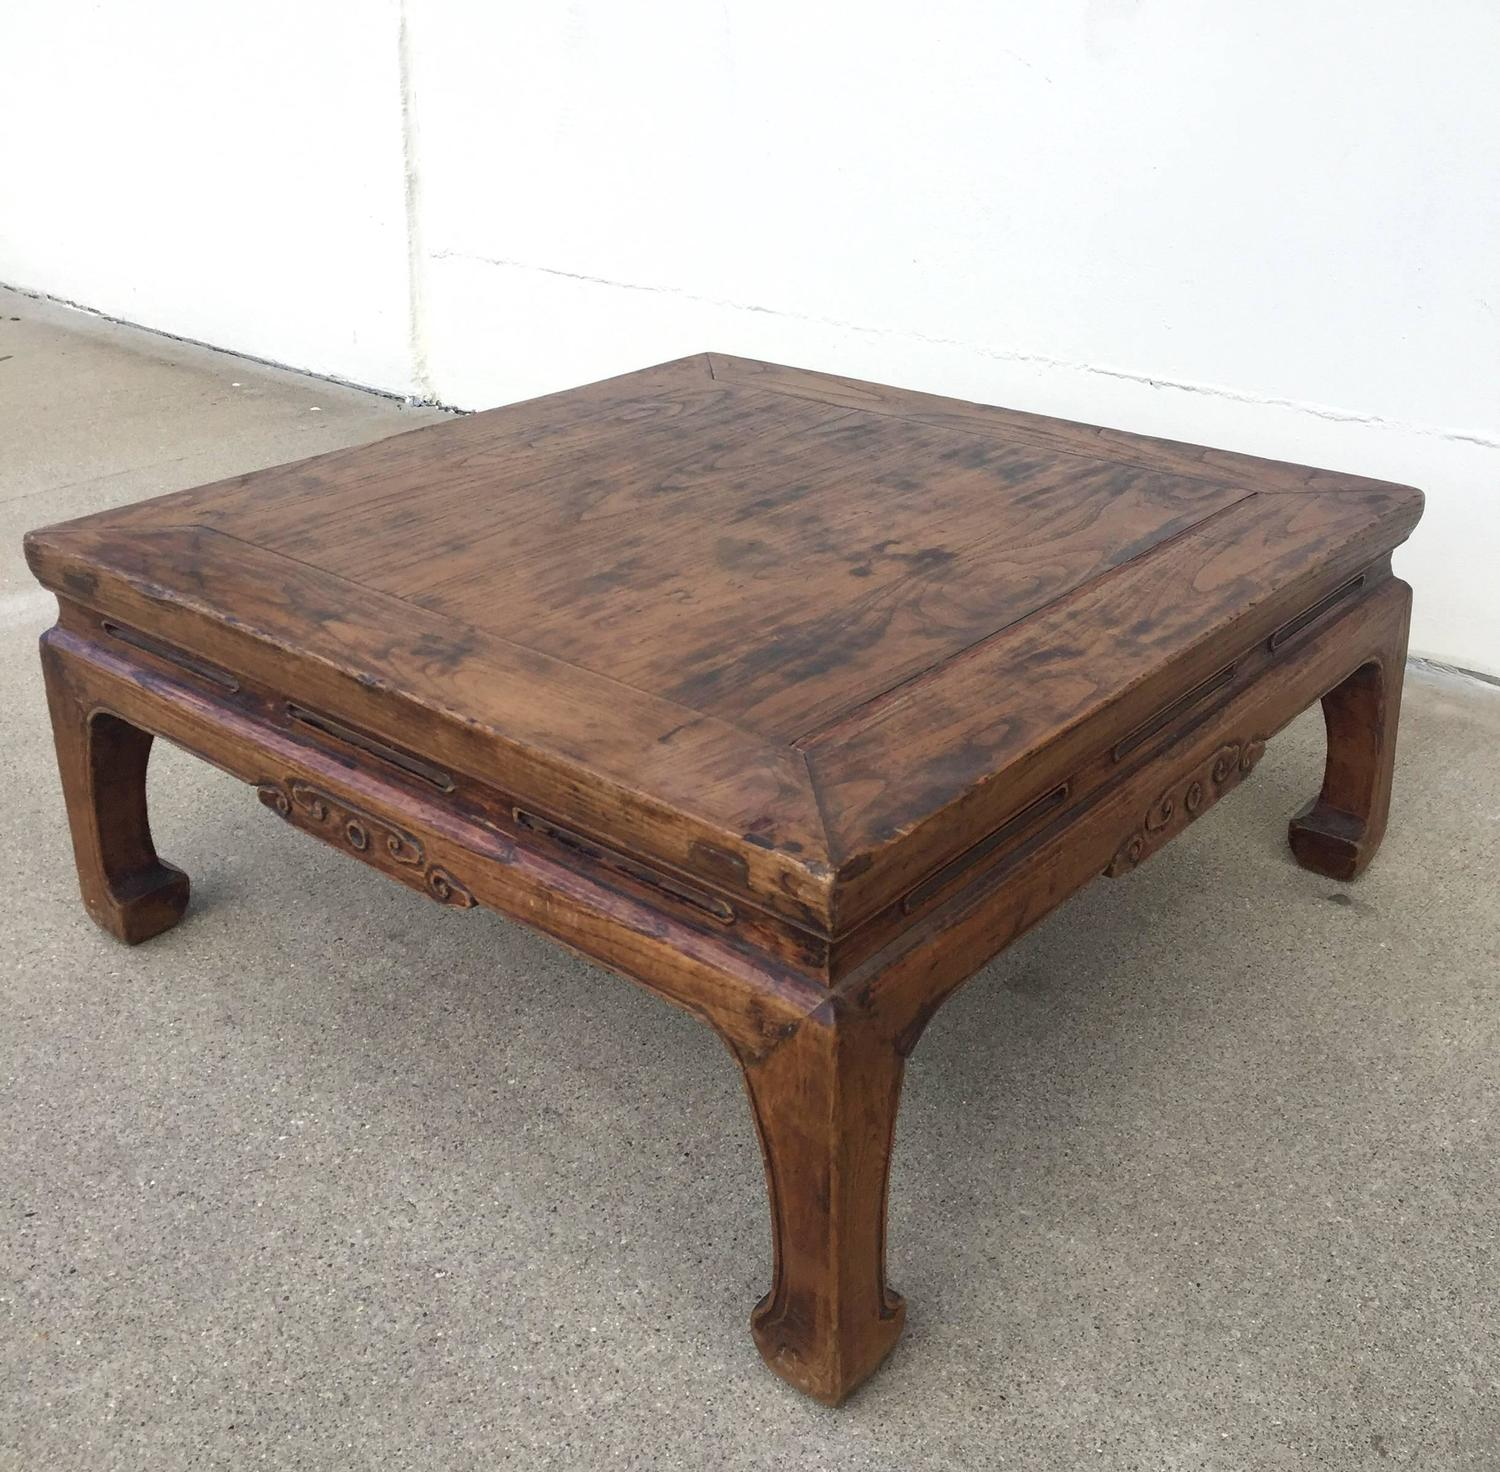 Table China: Antique Chinese Square Kang Table, Low Table For Sale At